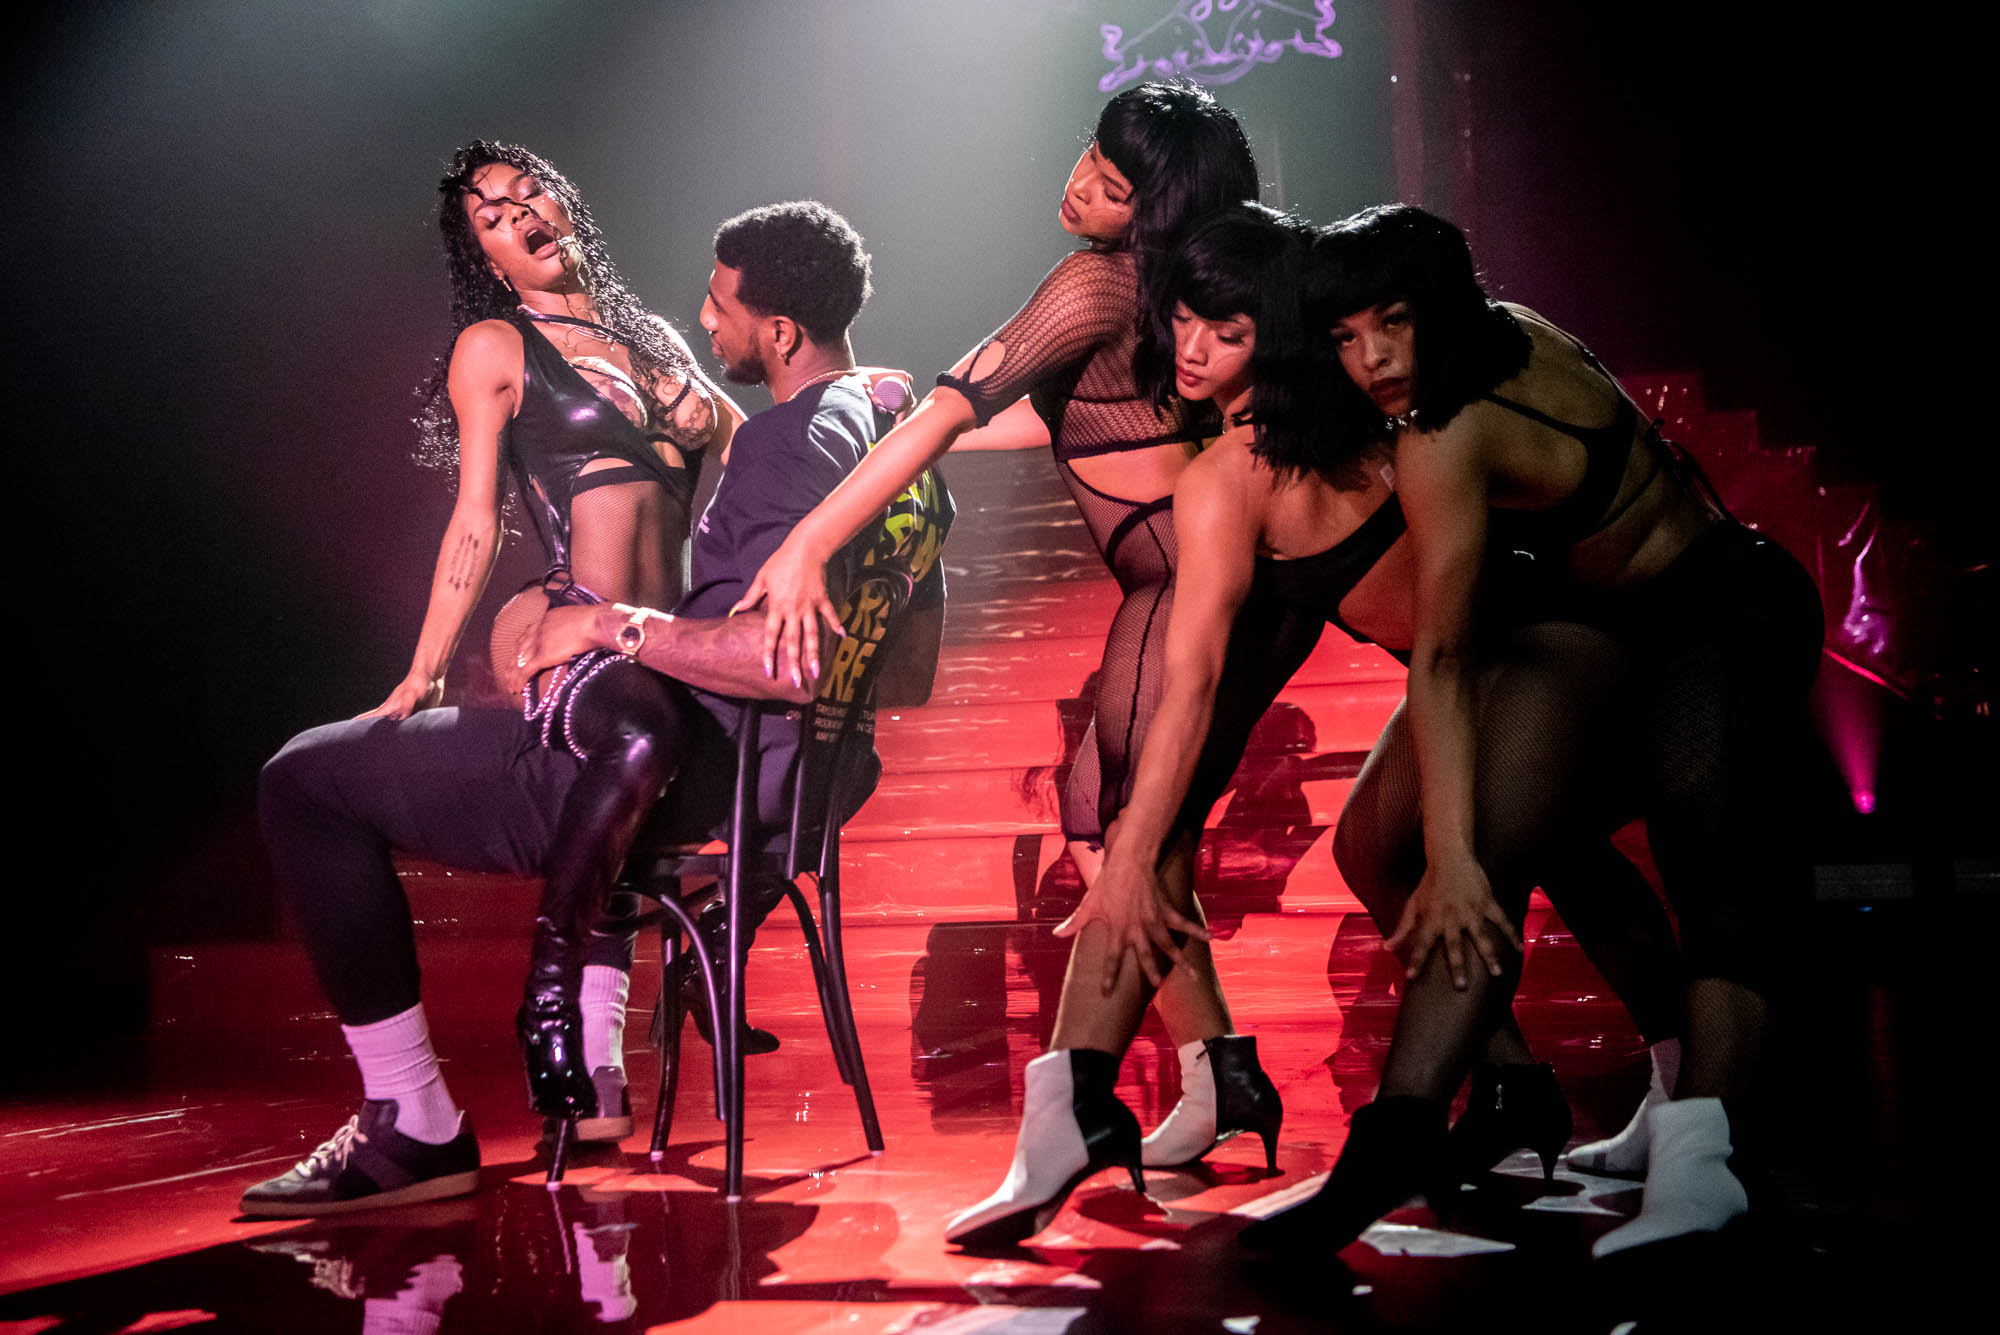 Teyana Taylor: House of Petunia at Grand Ballroom at Manhattan Center on Wednesday, May 15, 2019.